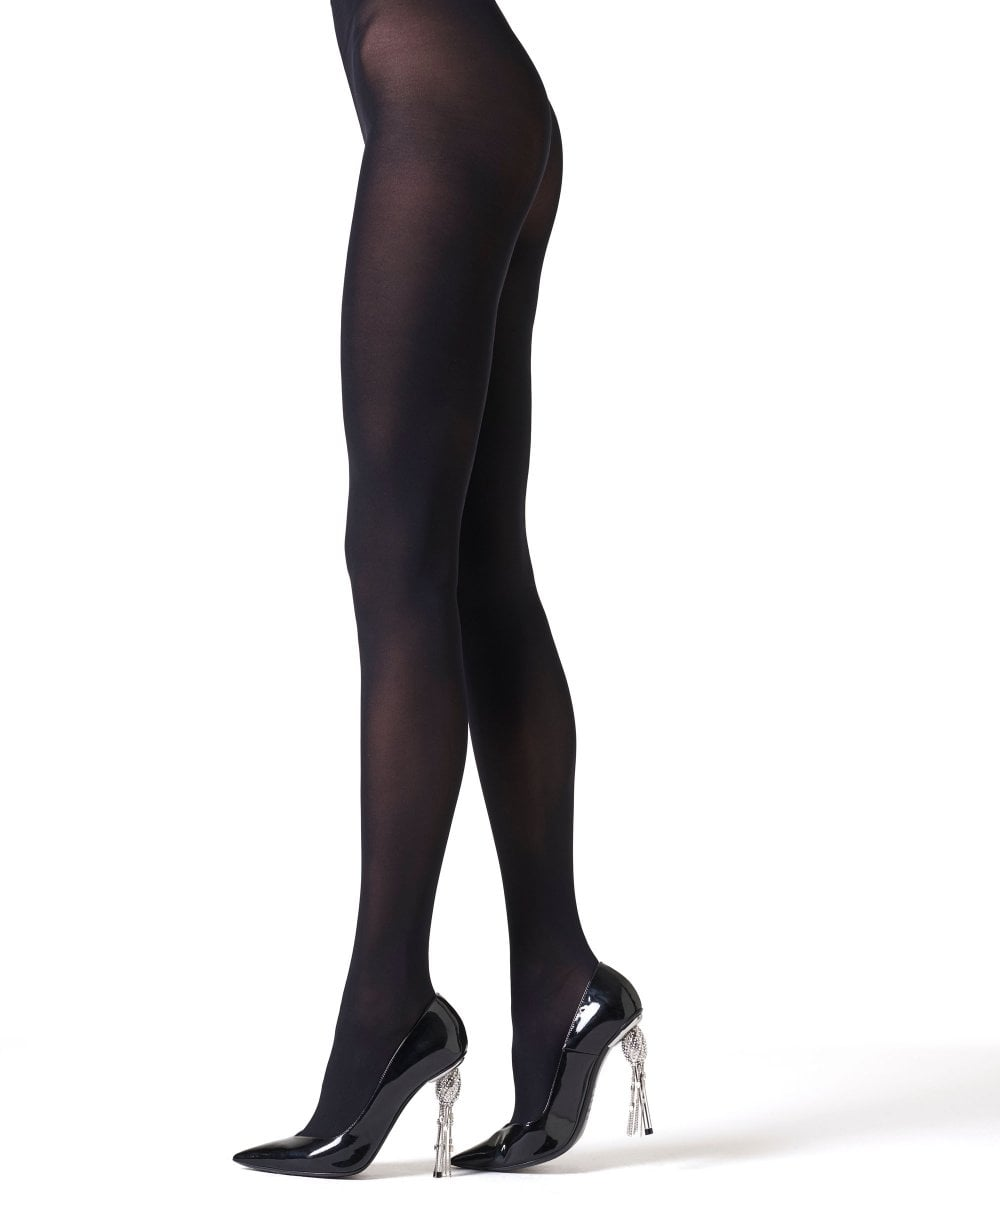 buy popular united kingdom various styles La Perla Virna 50 Opaque Tights - Tights from luxury-legs.com UK